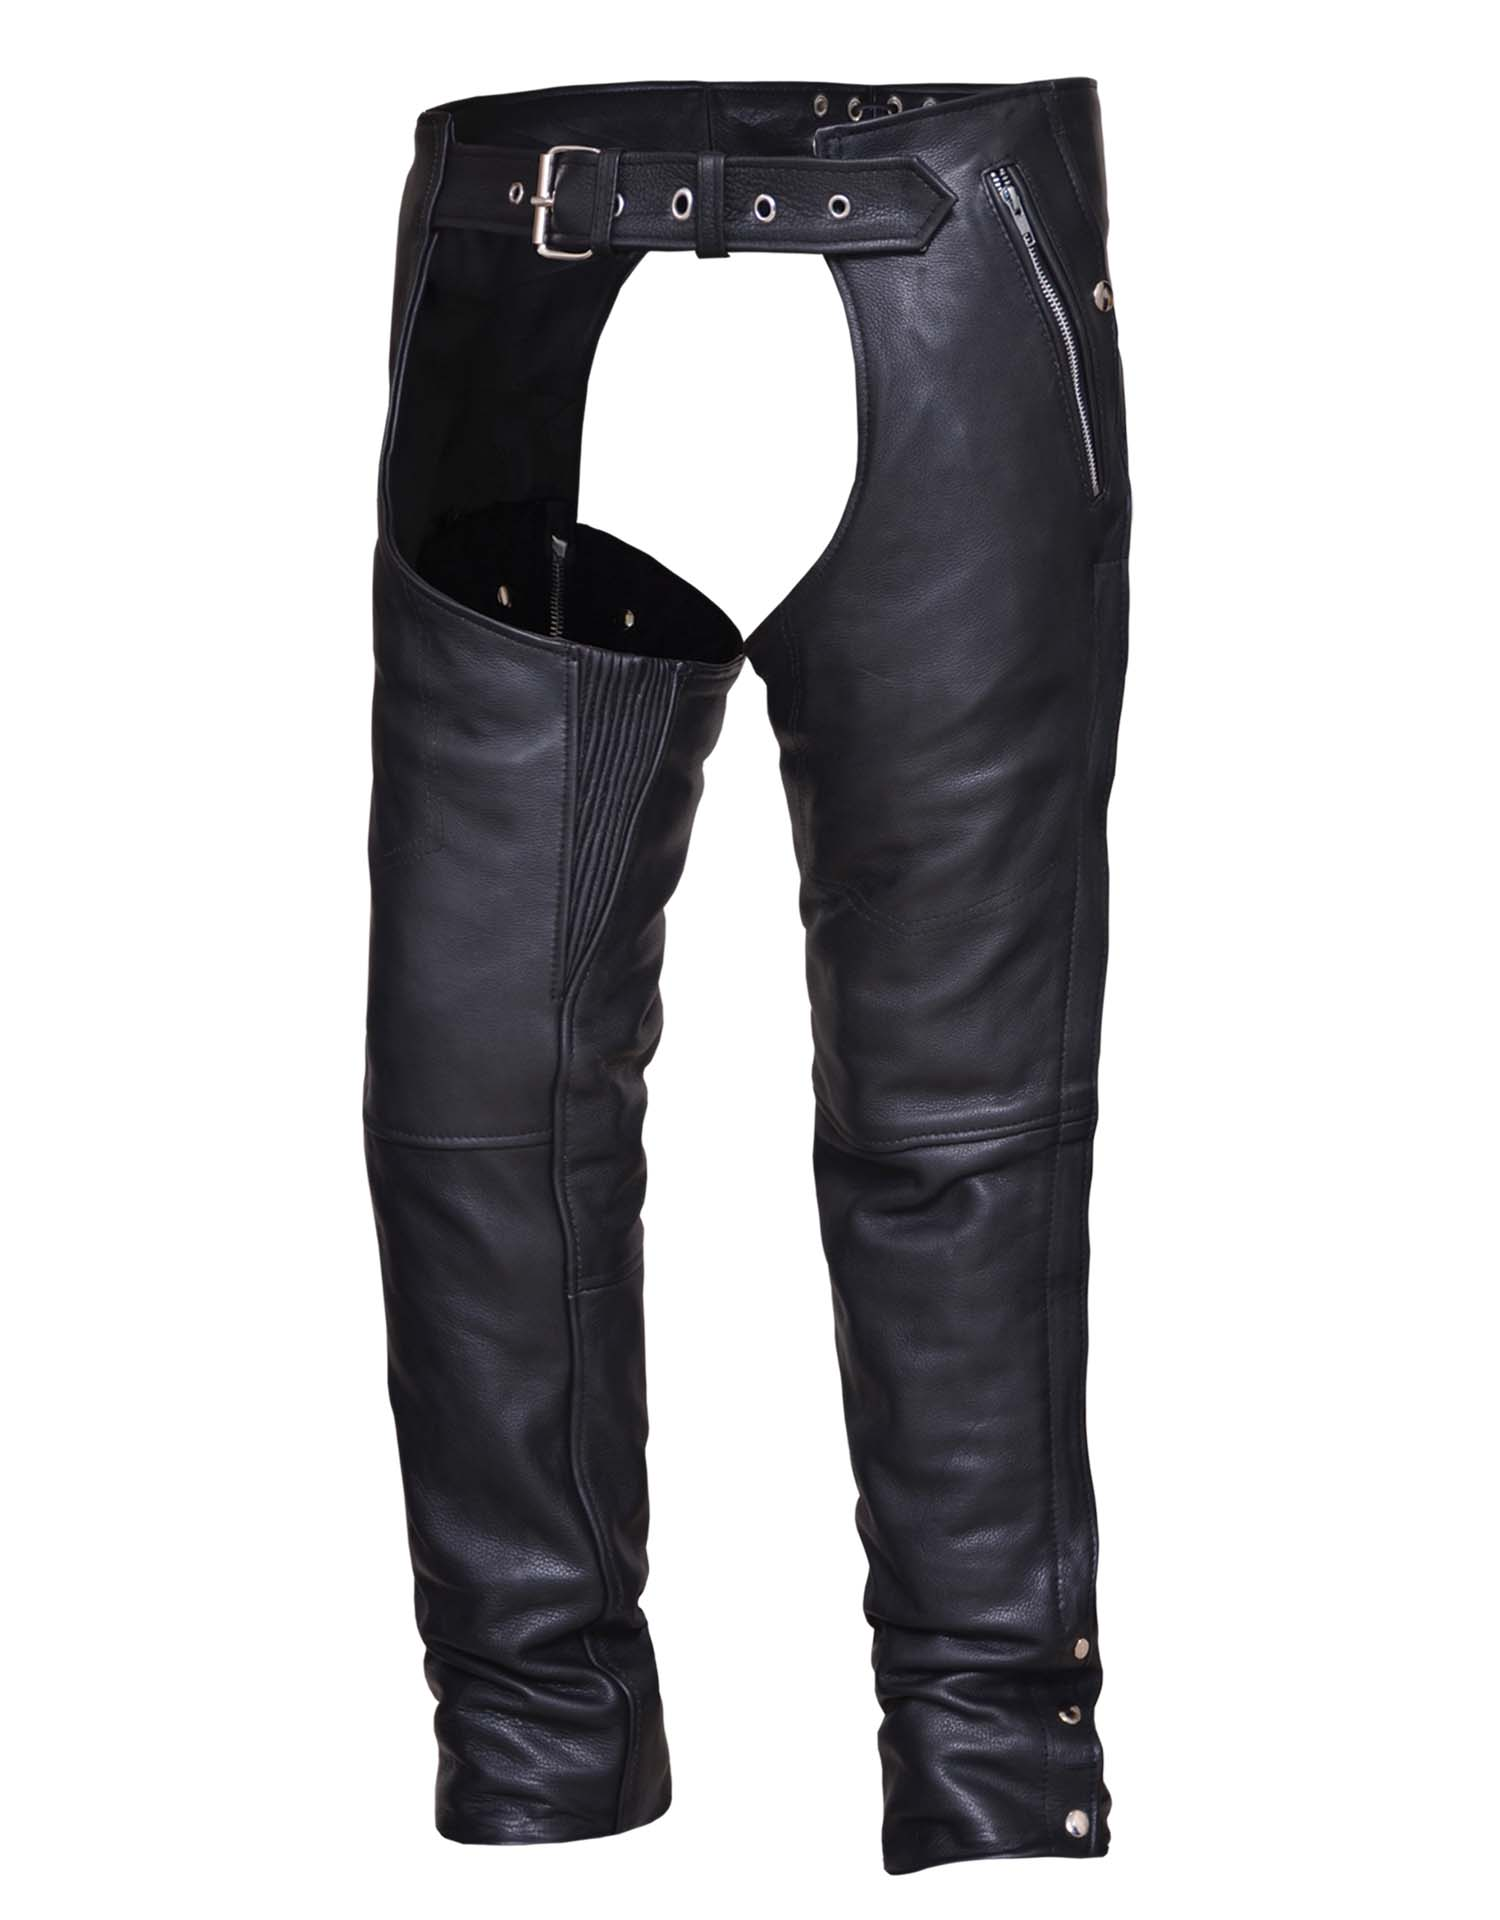 Unisex Ultra Black Leather Chaps w/ Inner Thigh Stretch Panel (Size: X-Small)